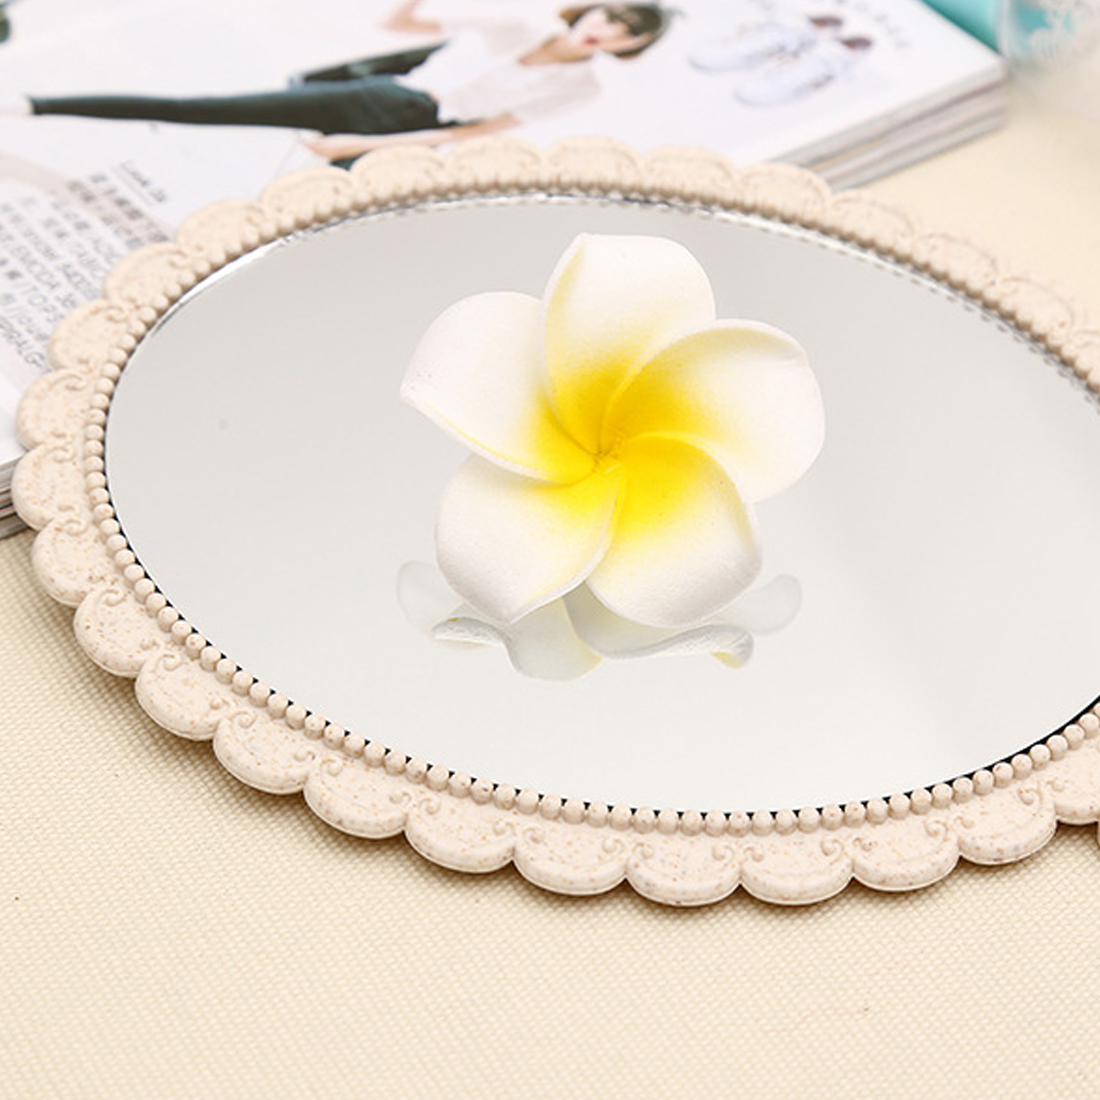 Top sale 1pc Silver Vintage Ladies Floral Repousse Oval Round Makeup Hand Hold Mirror Princess Lady Makeup Beauty Dresser Gift